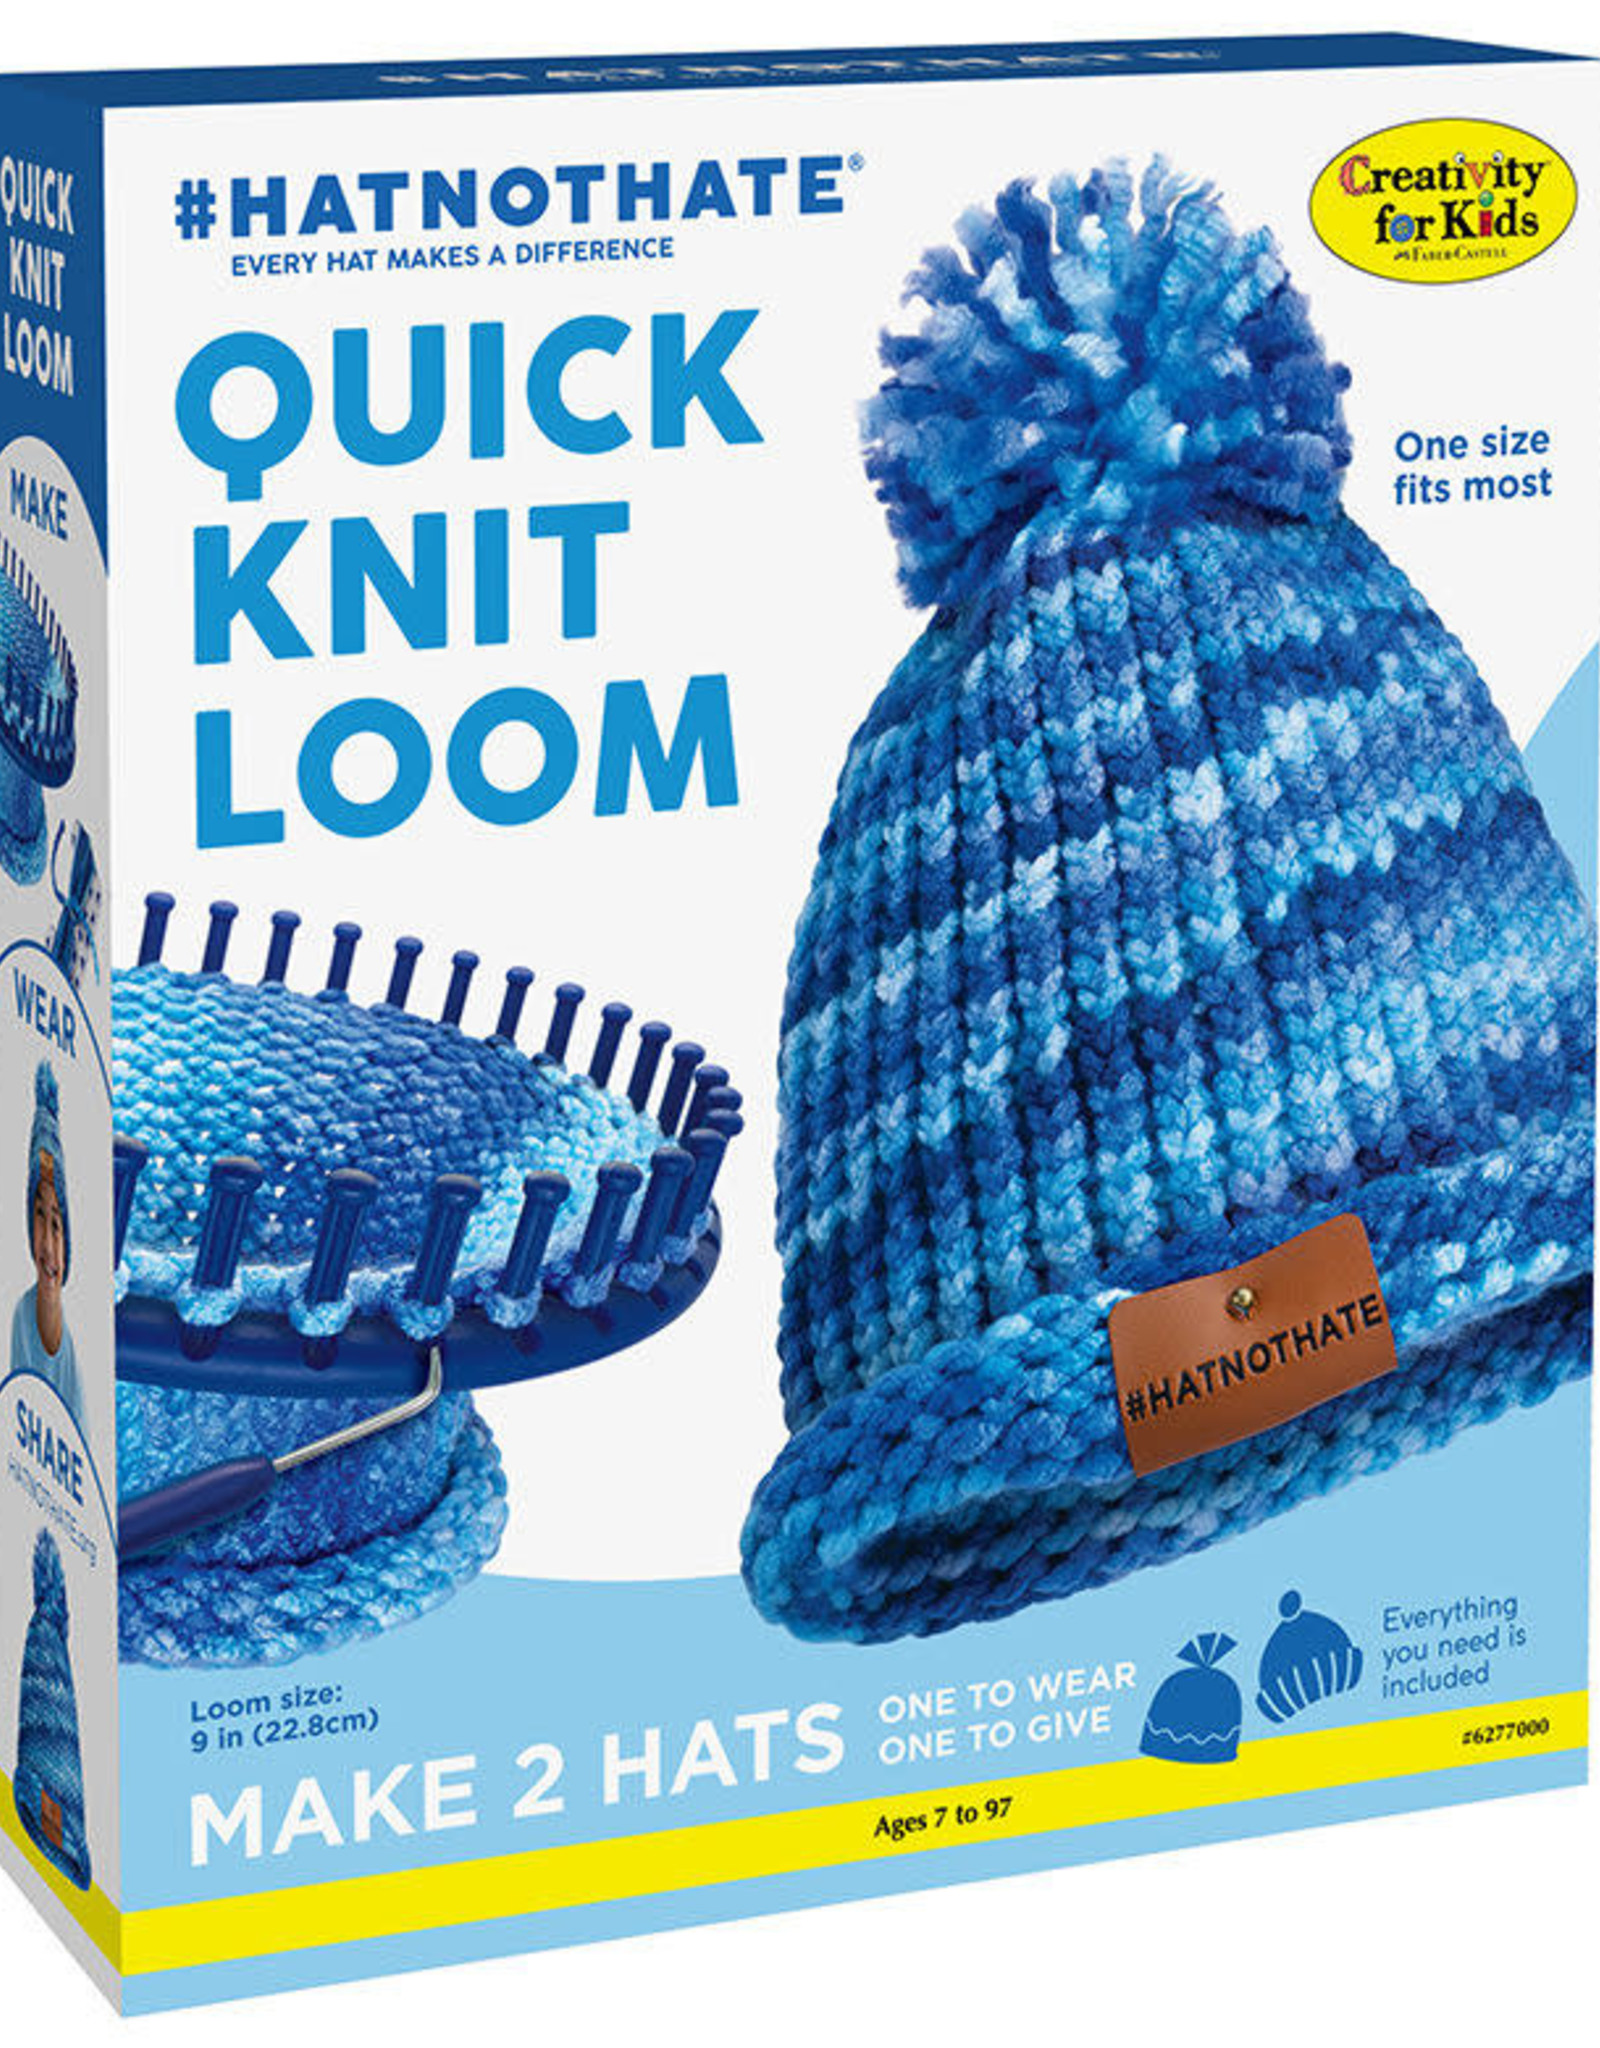 Creativity for Kids HAT NOT HATE Quick Knit Kit